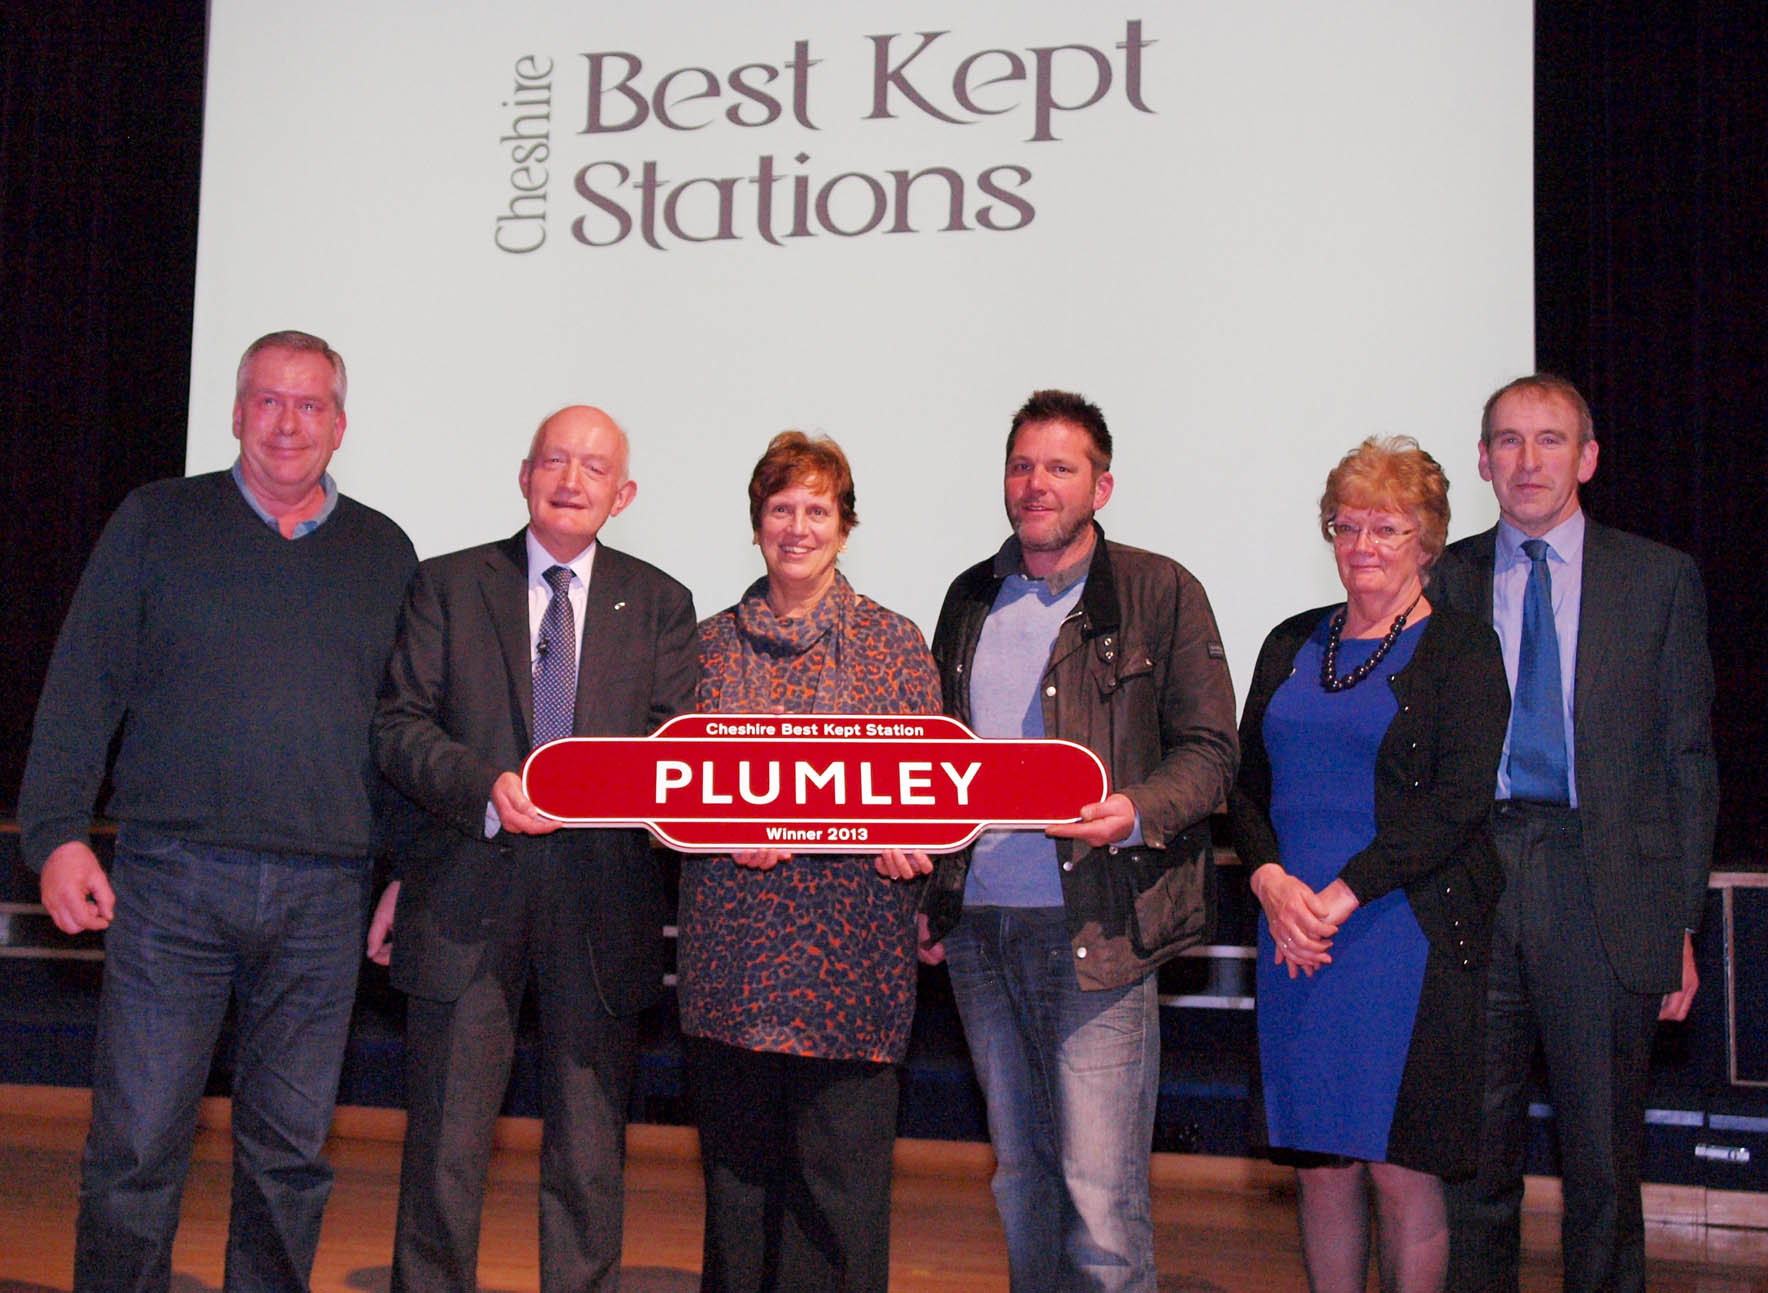 Plumley station claims top prize at Cheshire Best Kept Stations awards